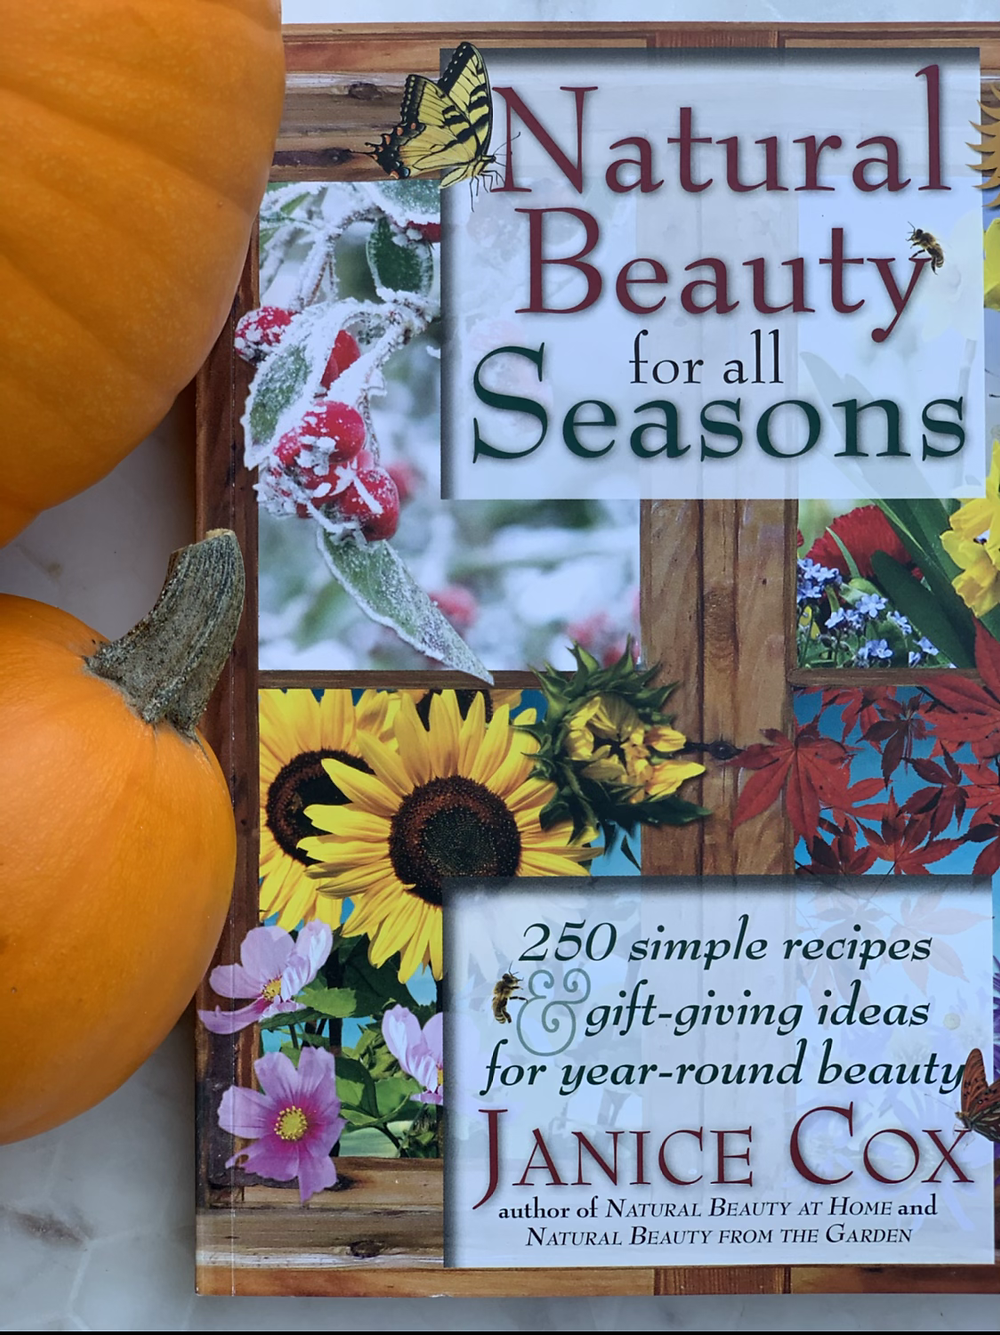 Cover shot of Natural Beauty for All Seasons book by Janice Cox